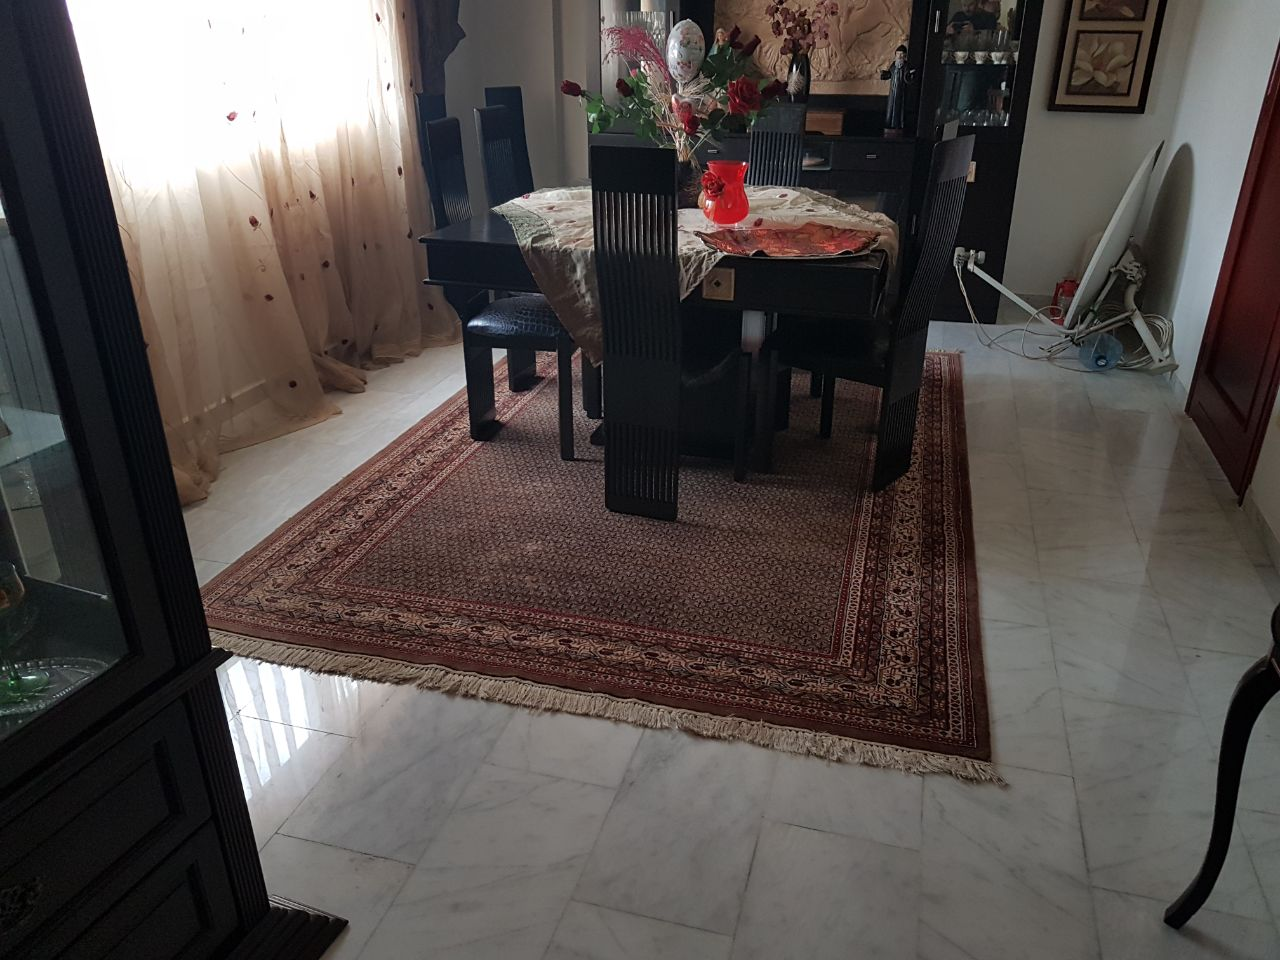 Apartment for sale in Ballouneh Keserwan, real estate in ballouneh keserwan, buy sell properties in ballouneh keserwan